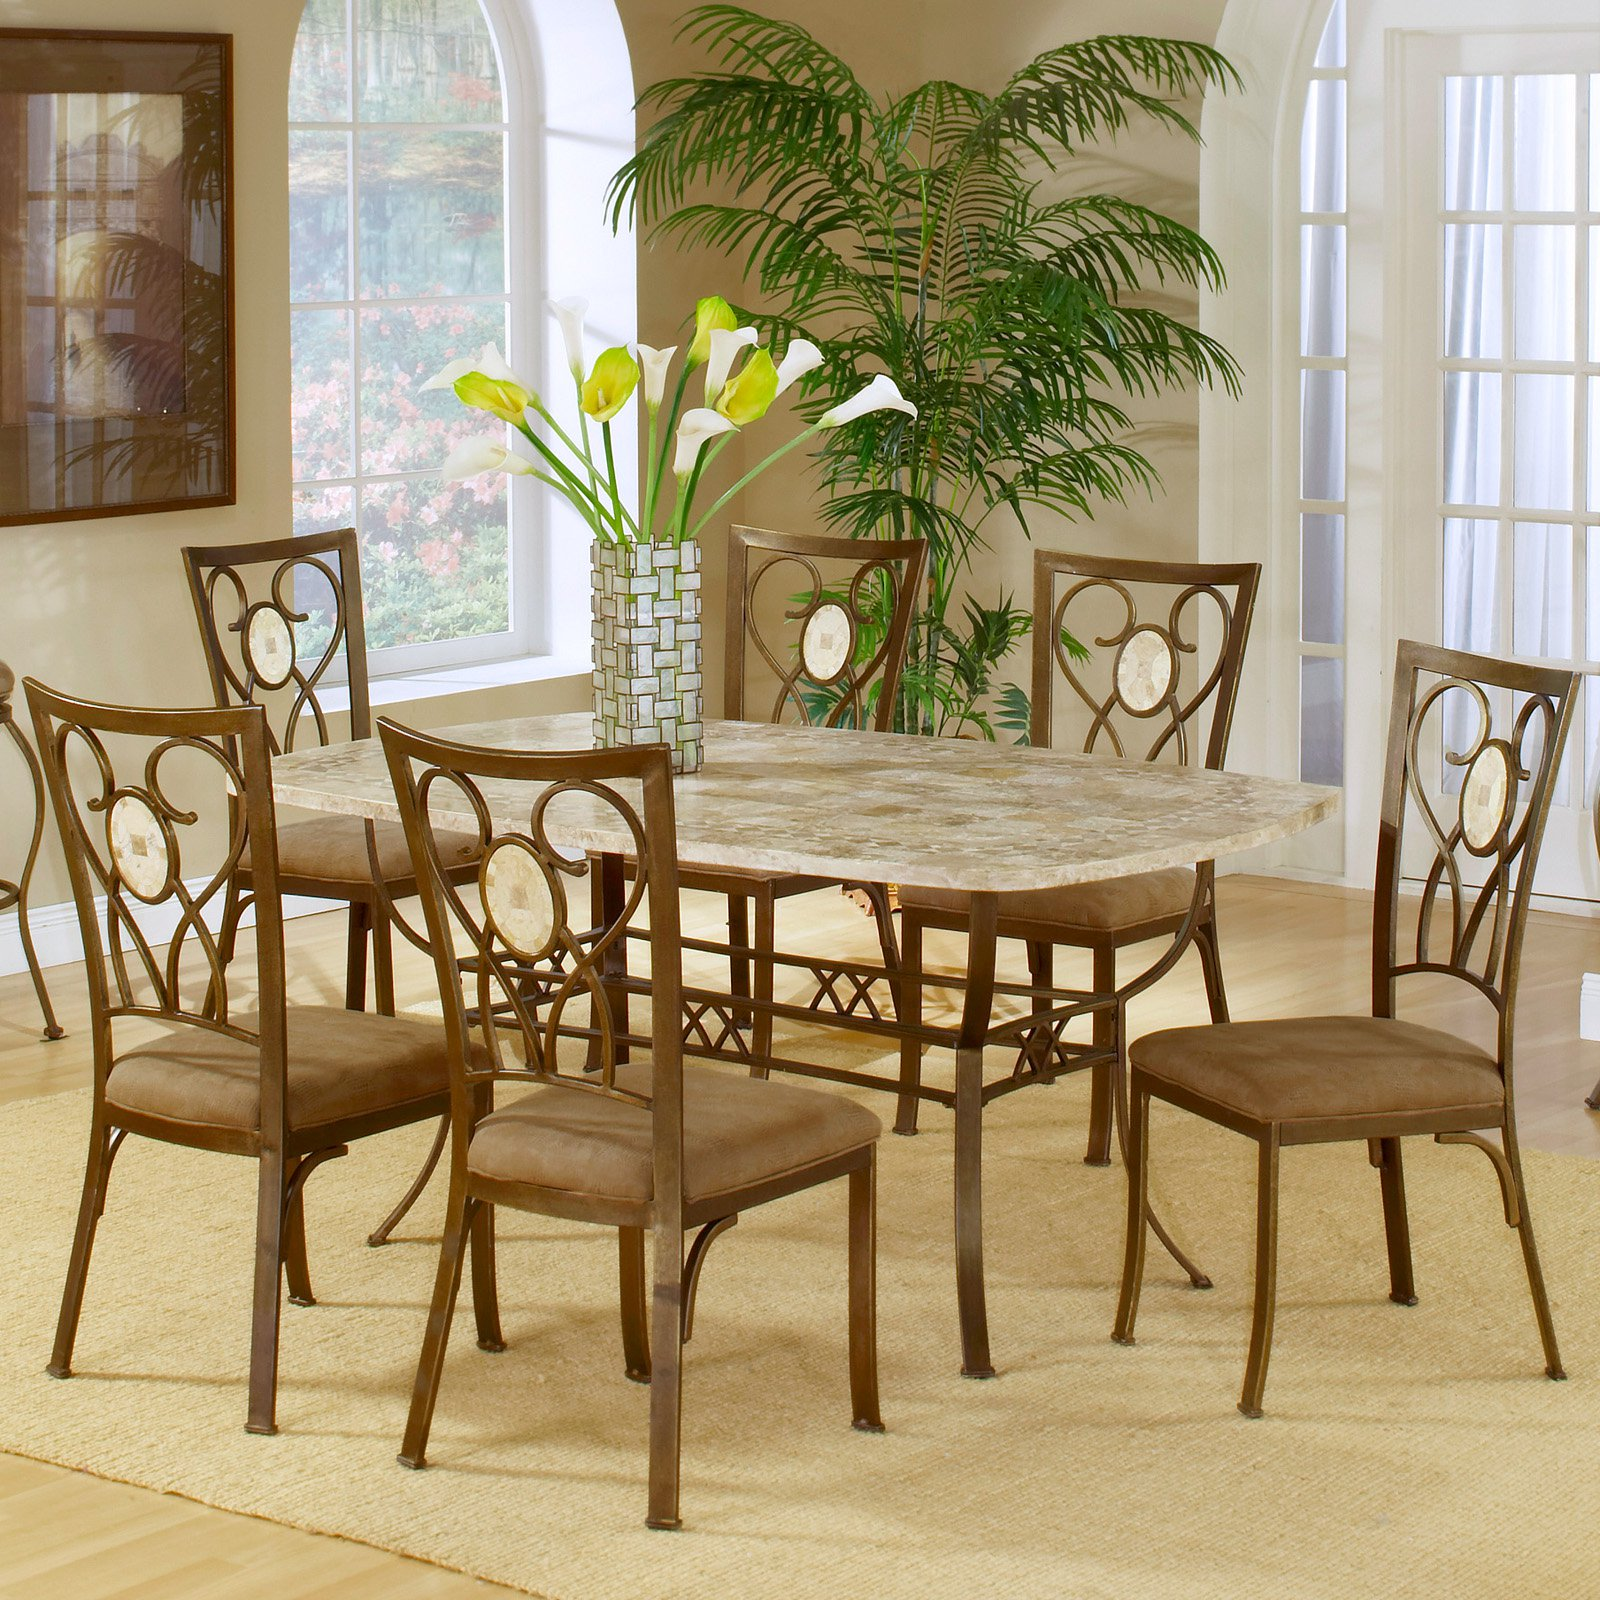 Superb Hillsdale Brookside 5 Piece Rectangle Dining Set With Oval Back Chairs Brown  Powder Coat   Walmart.com